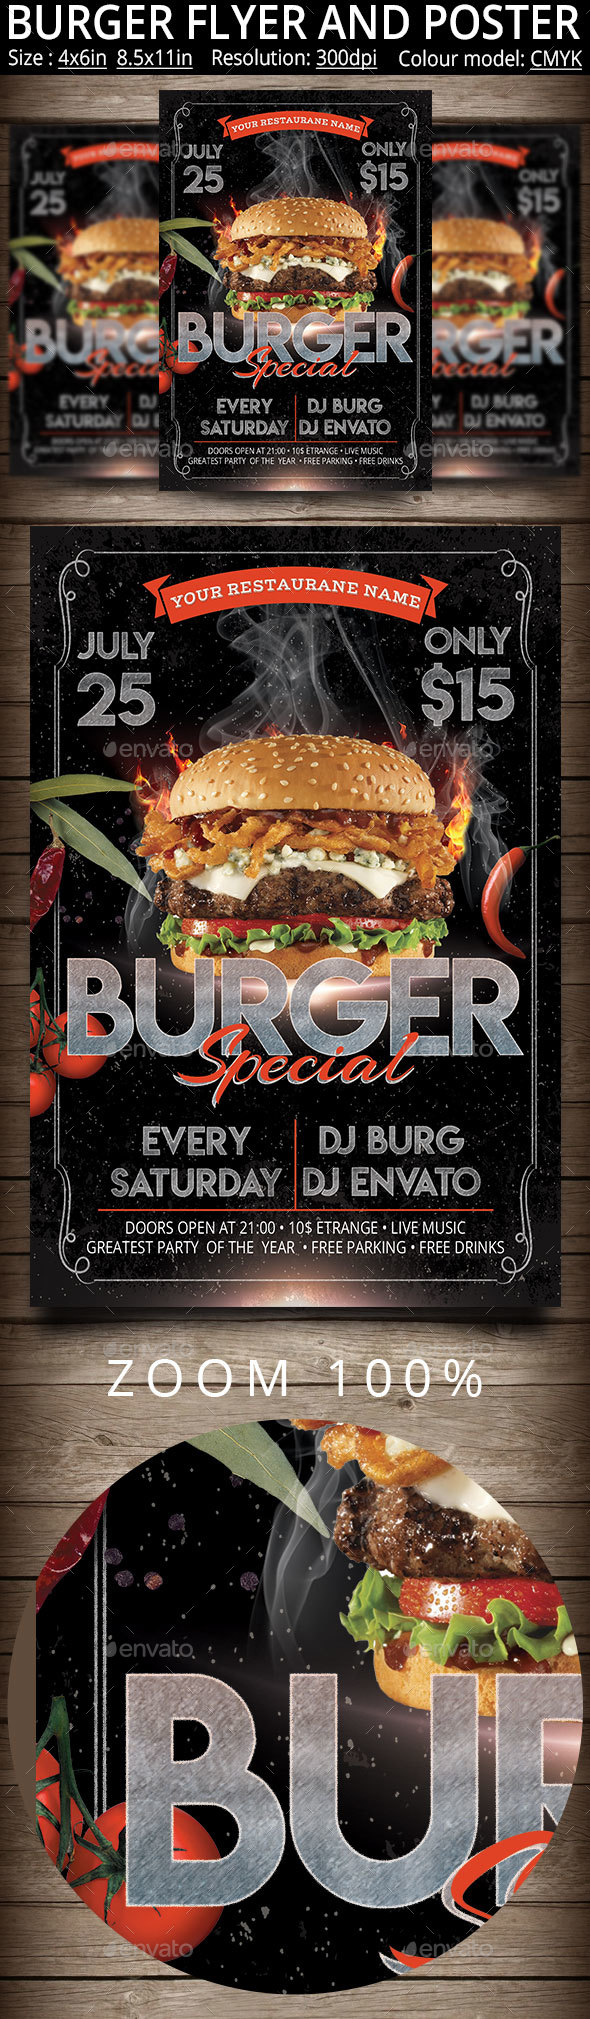 Burger Flyer And Poster